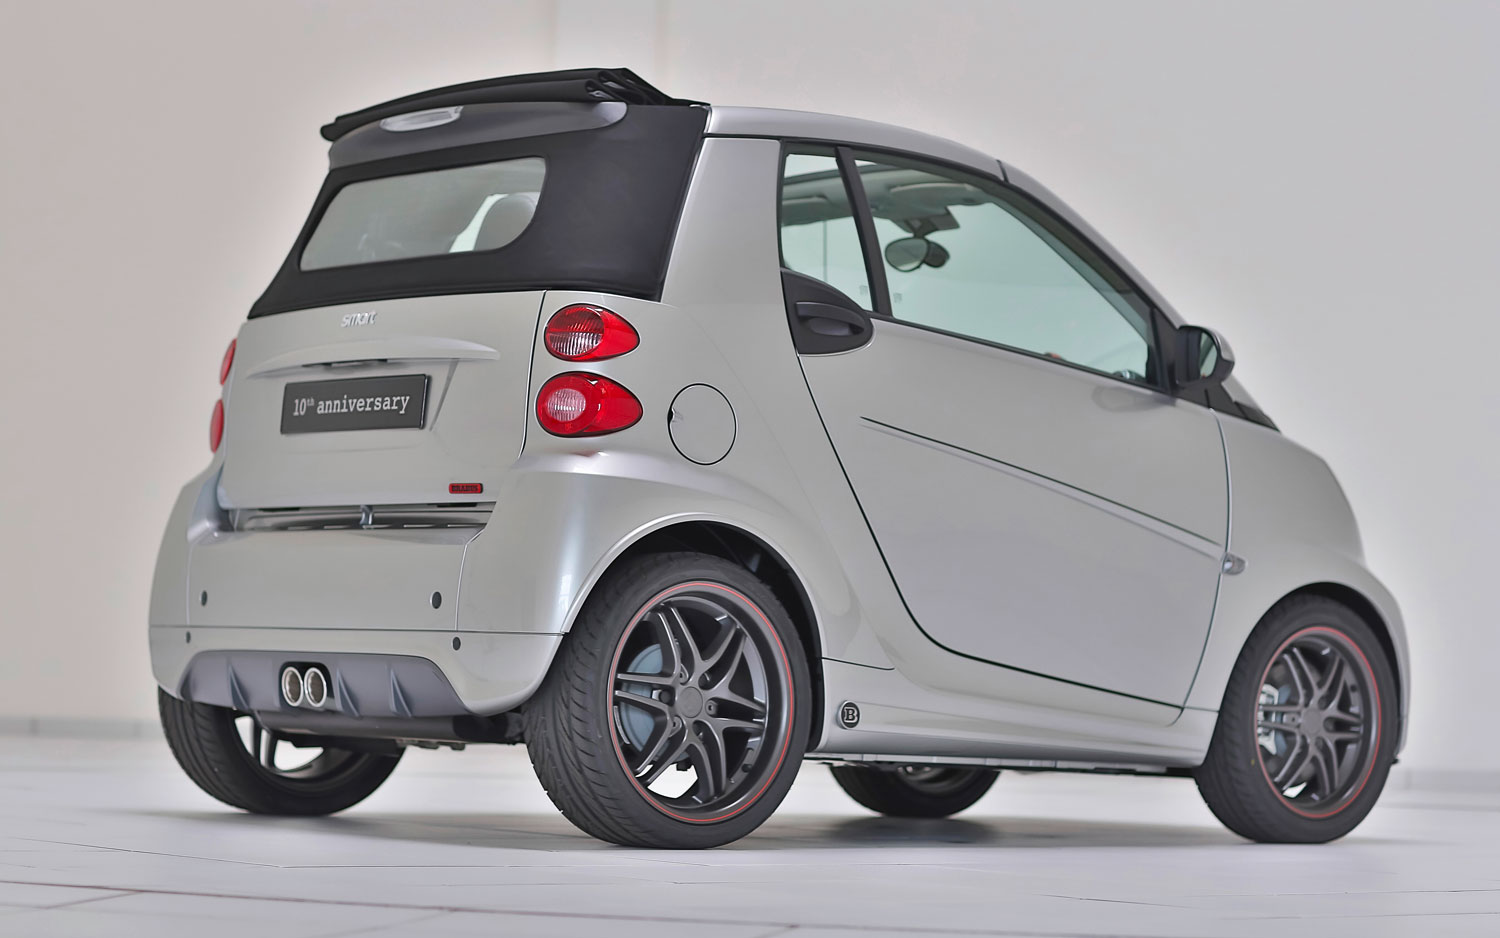 ten times fortwo special edition smart celebrates brabus fortwo history. Black Bedroom Furniture Sets. Home Design Ideas